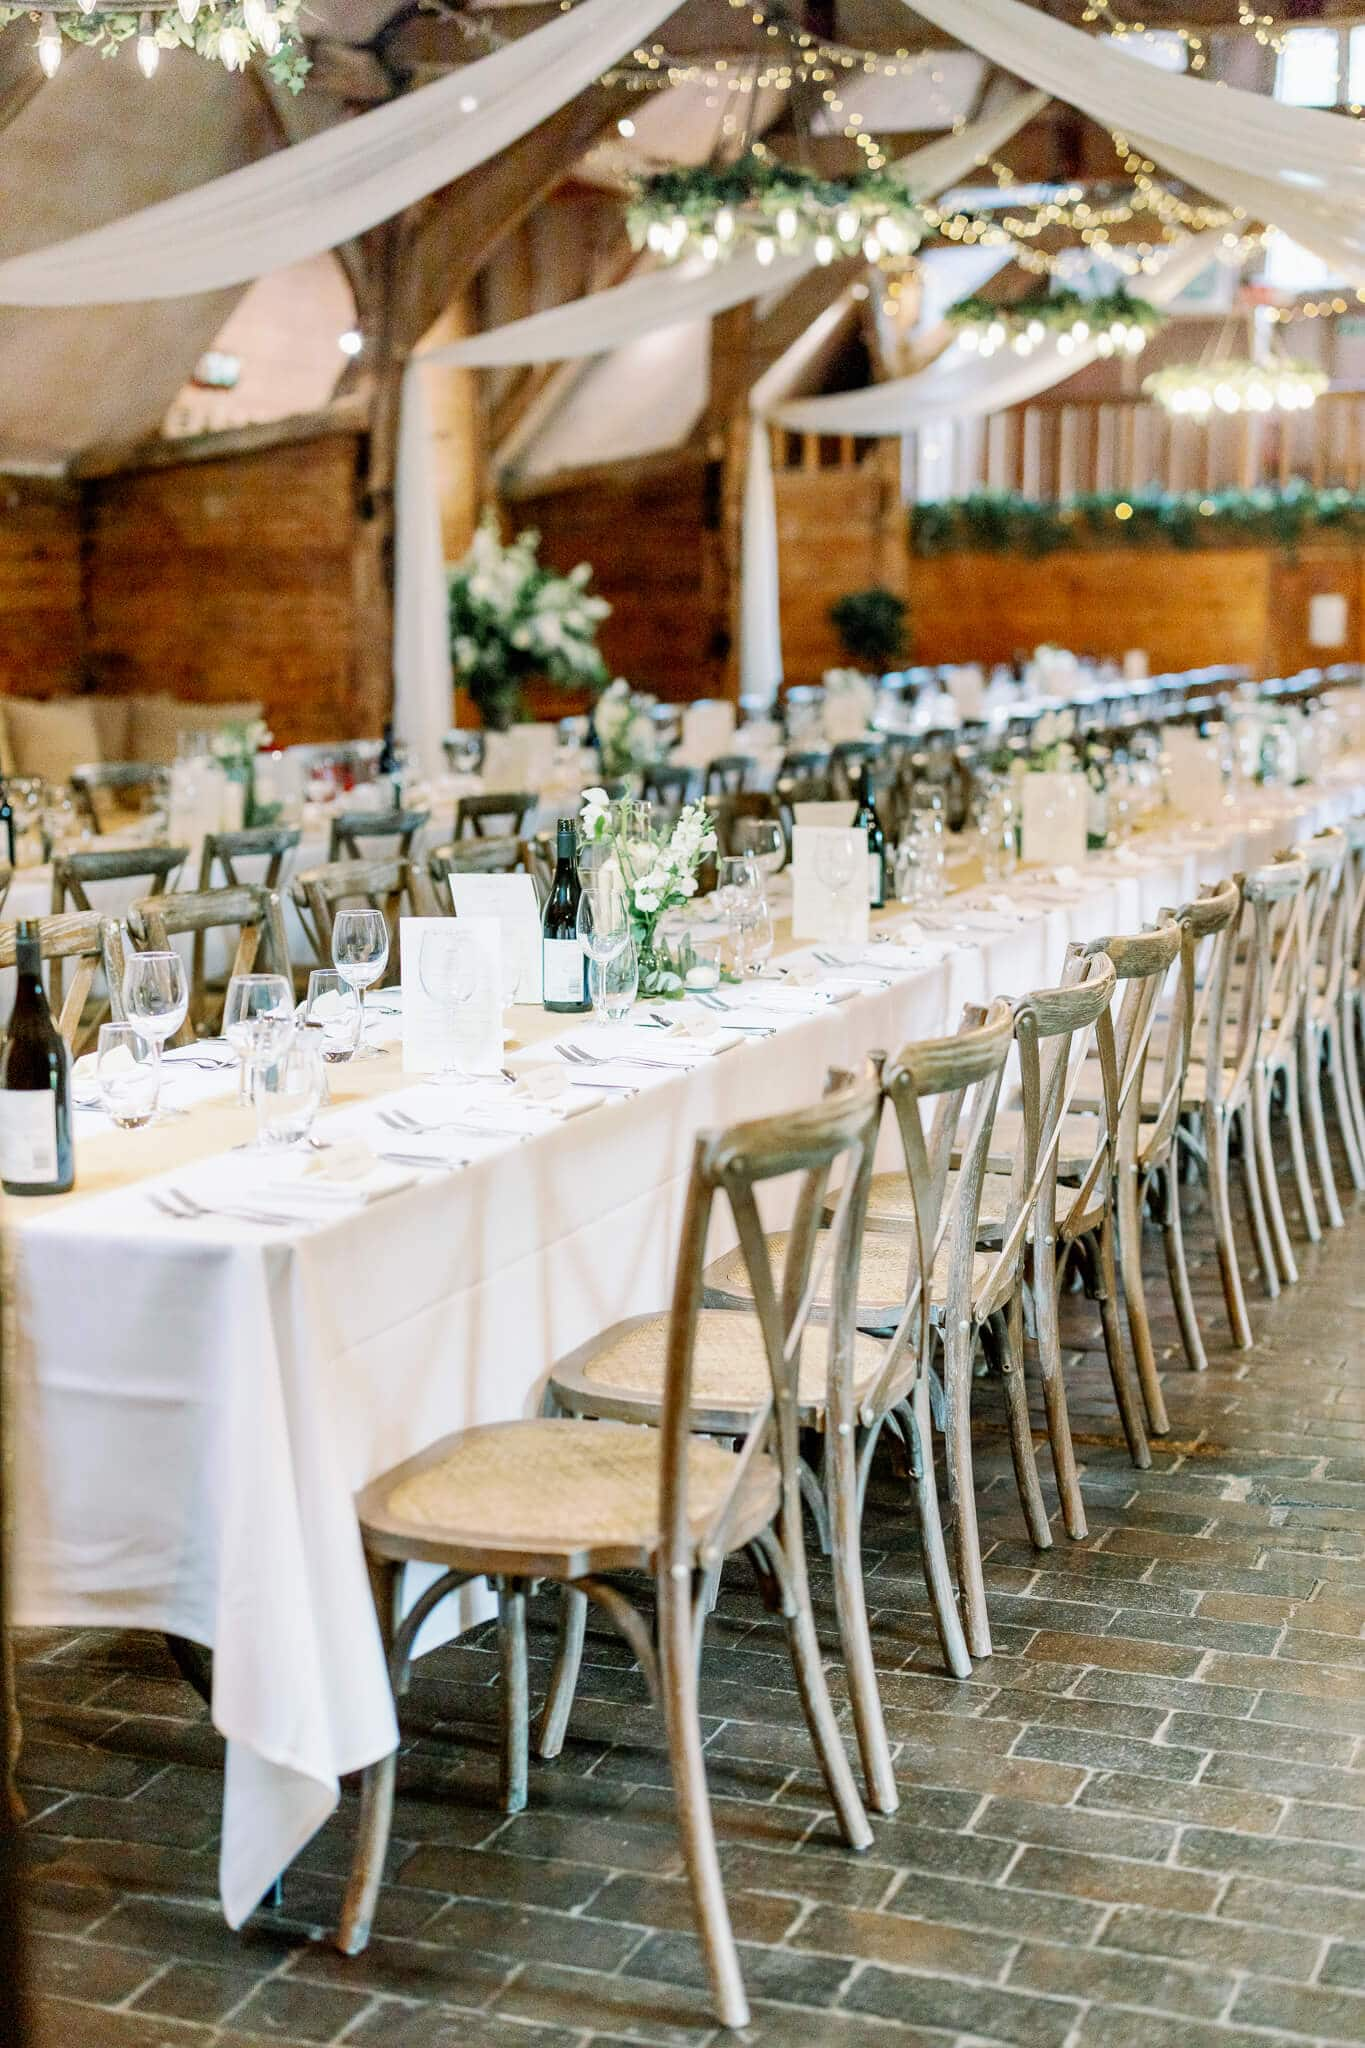 Lains Barns wedding venue with long trestle tables